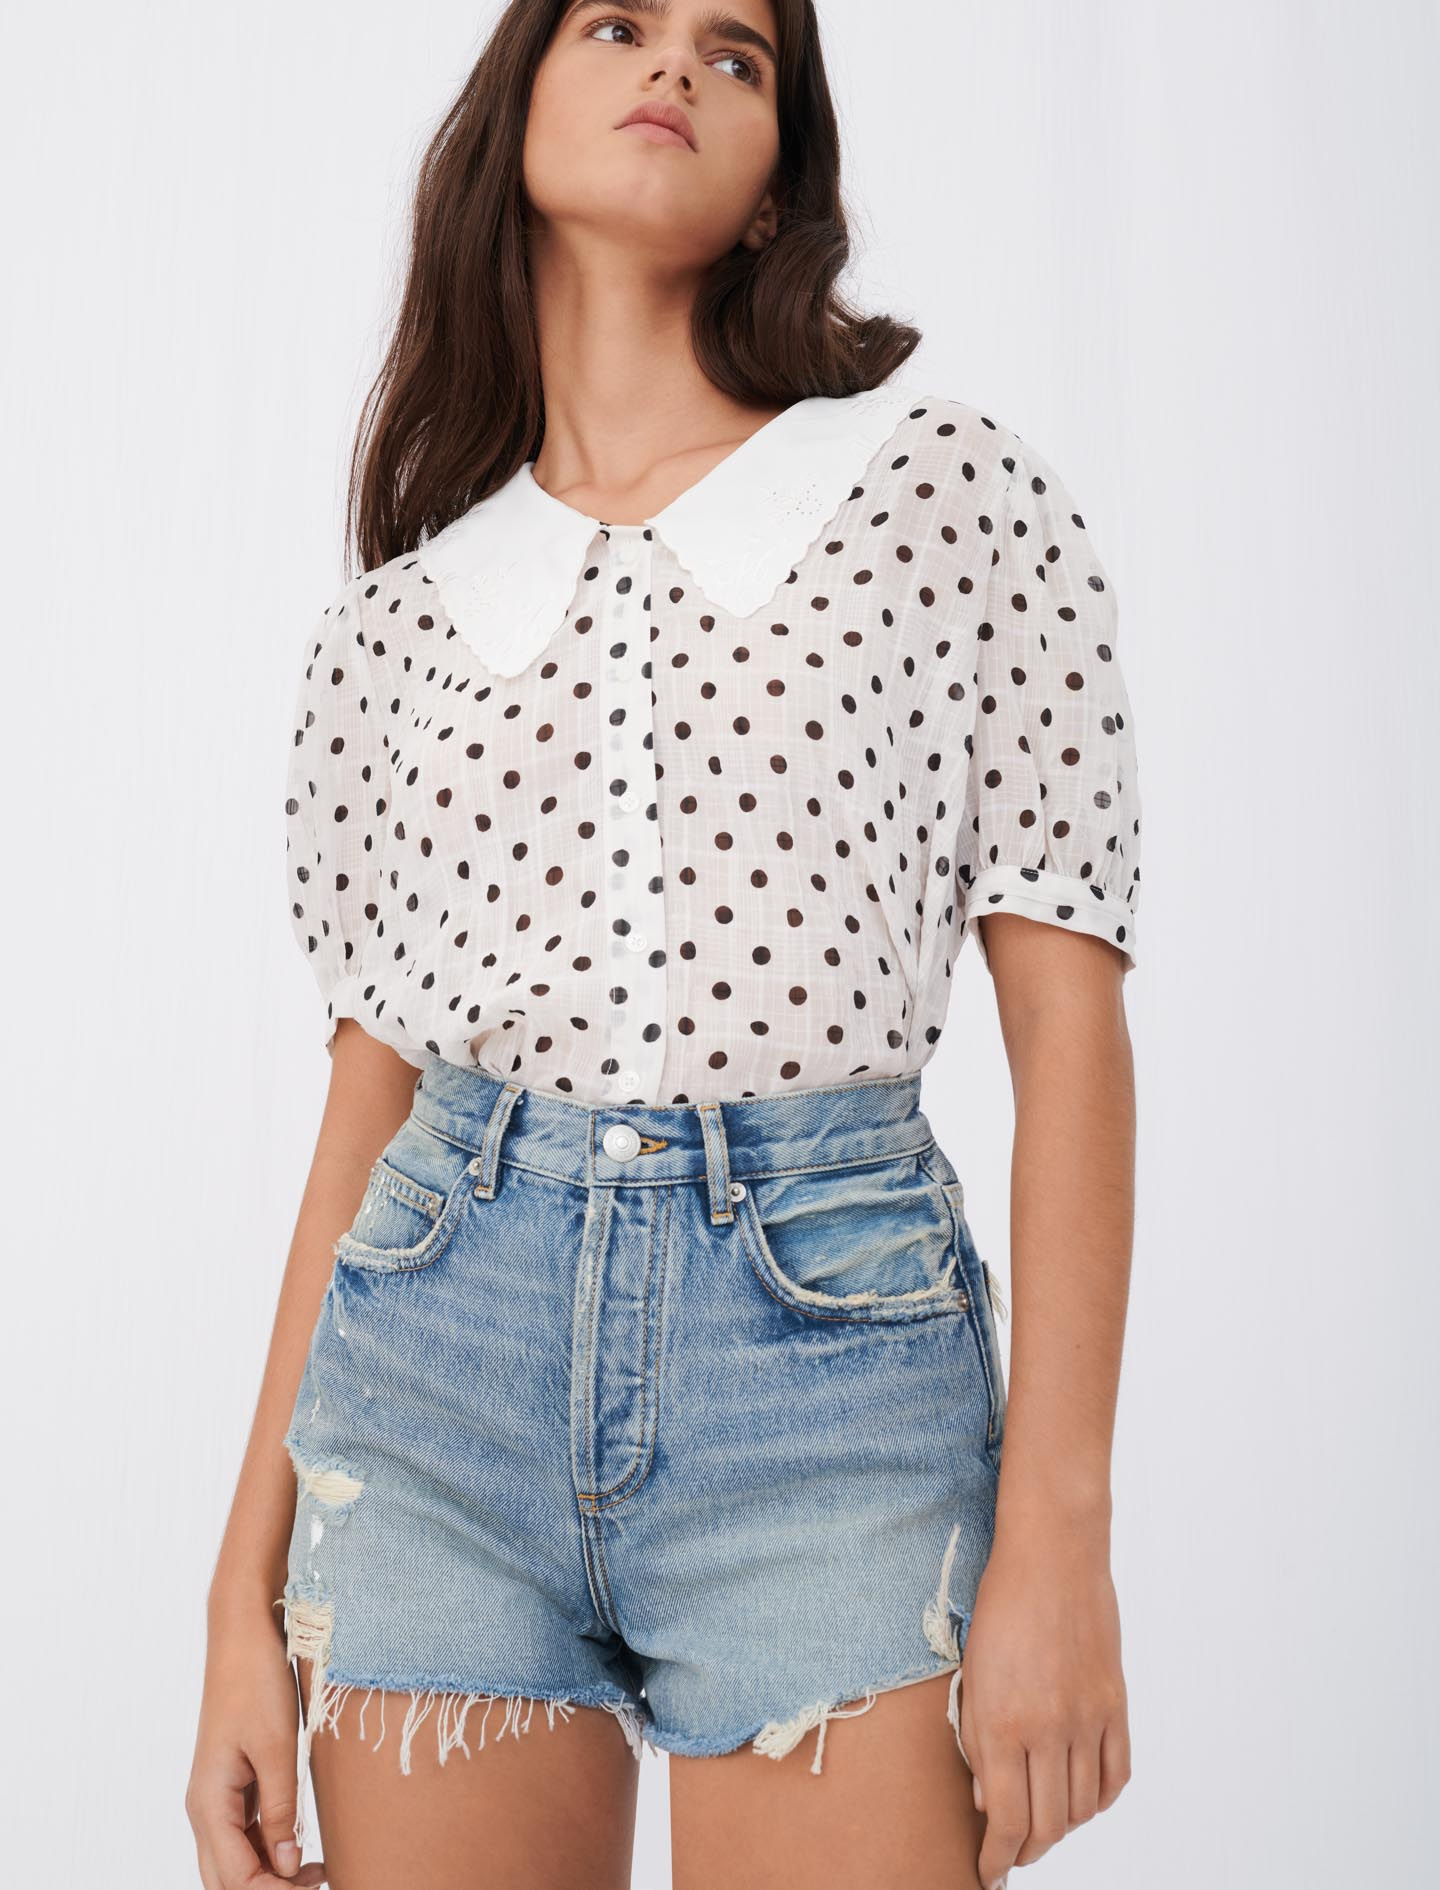 Maje Coiso top with white and black spots